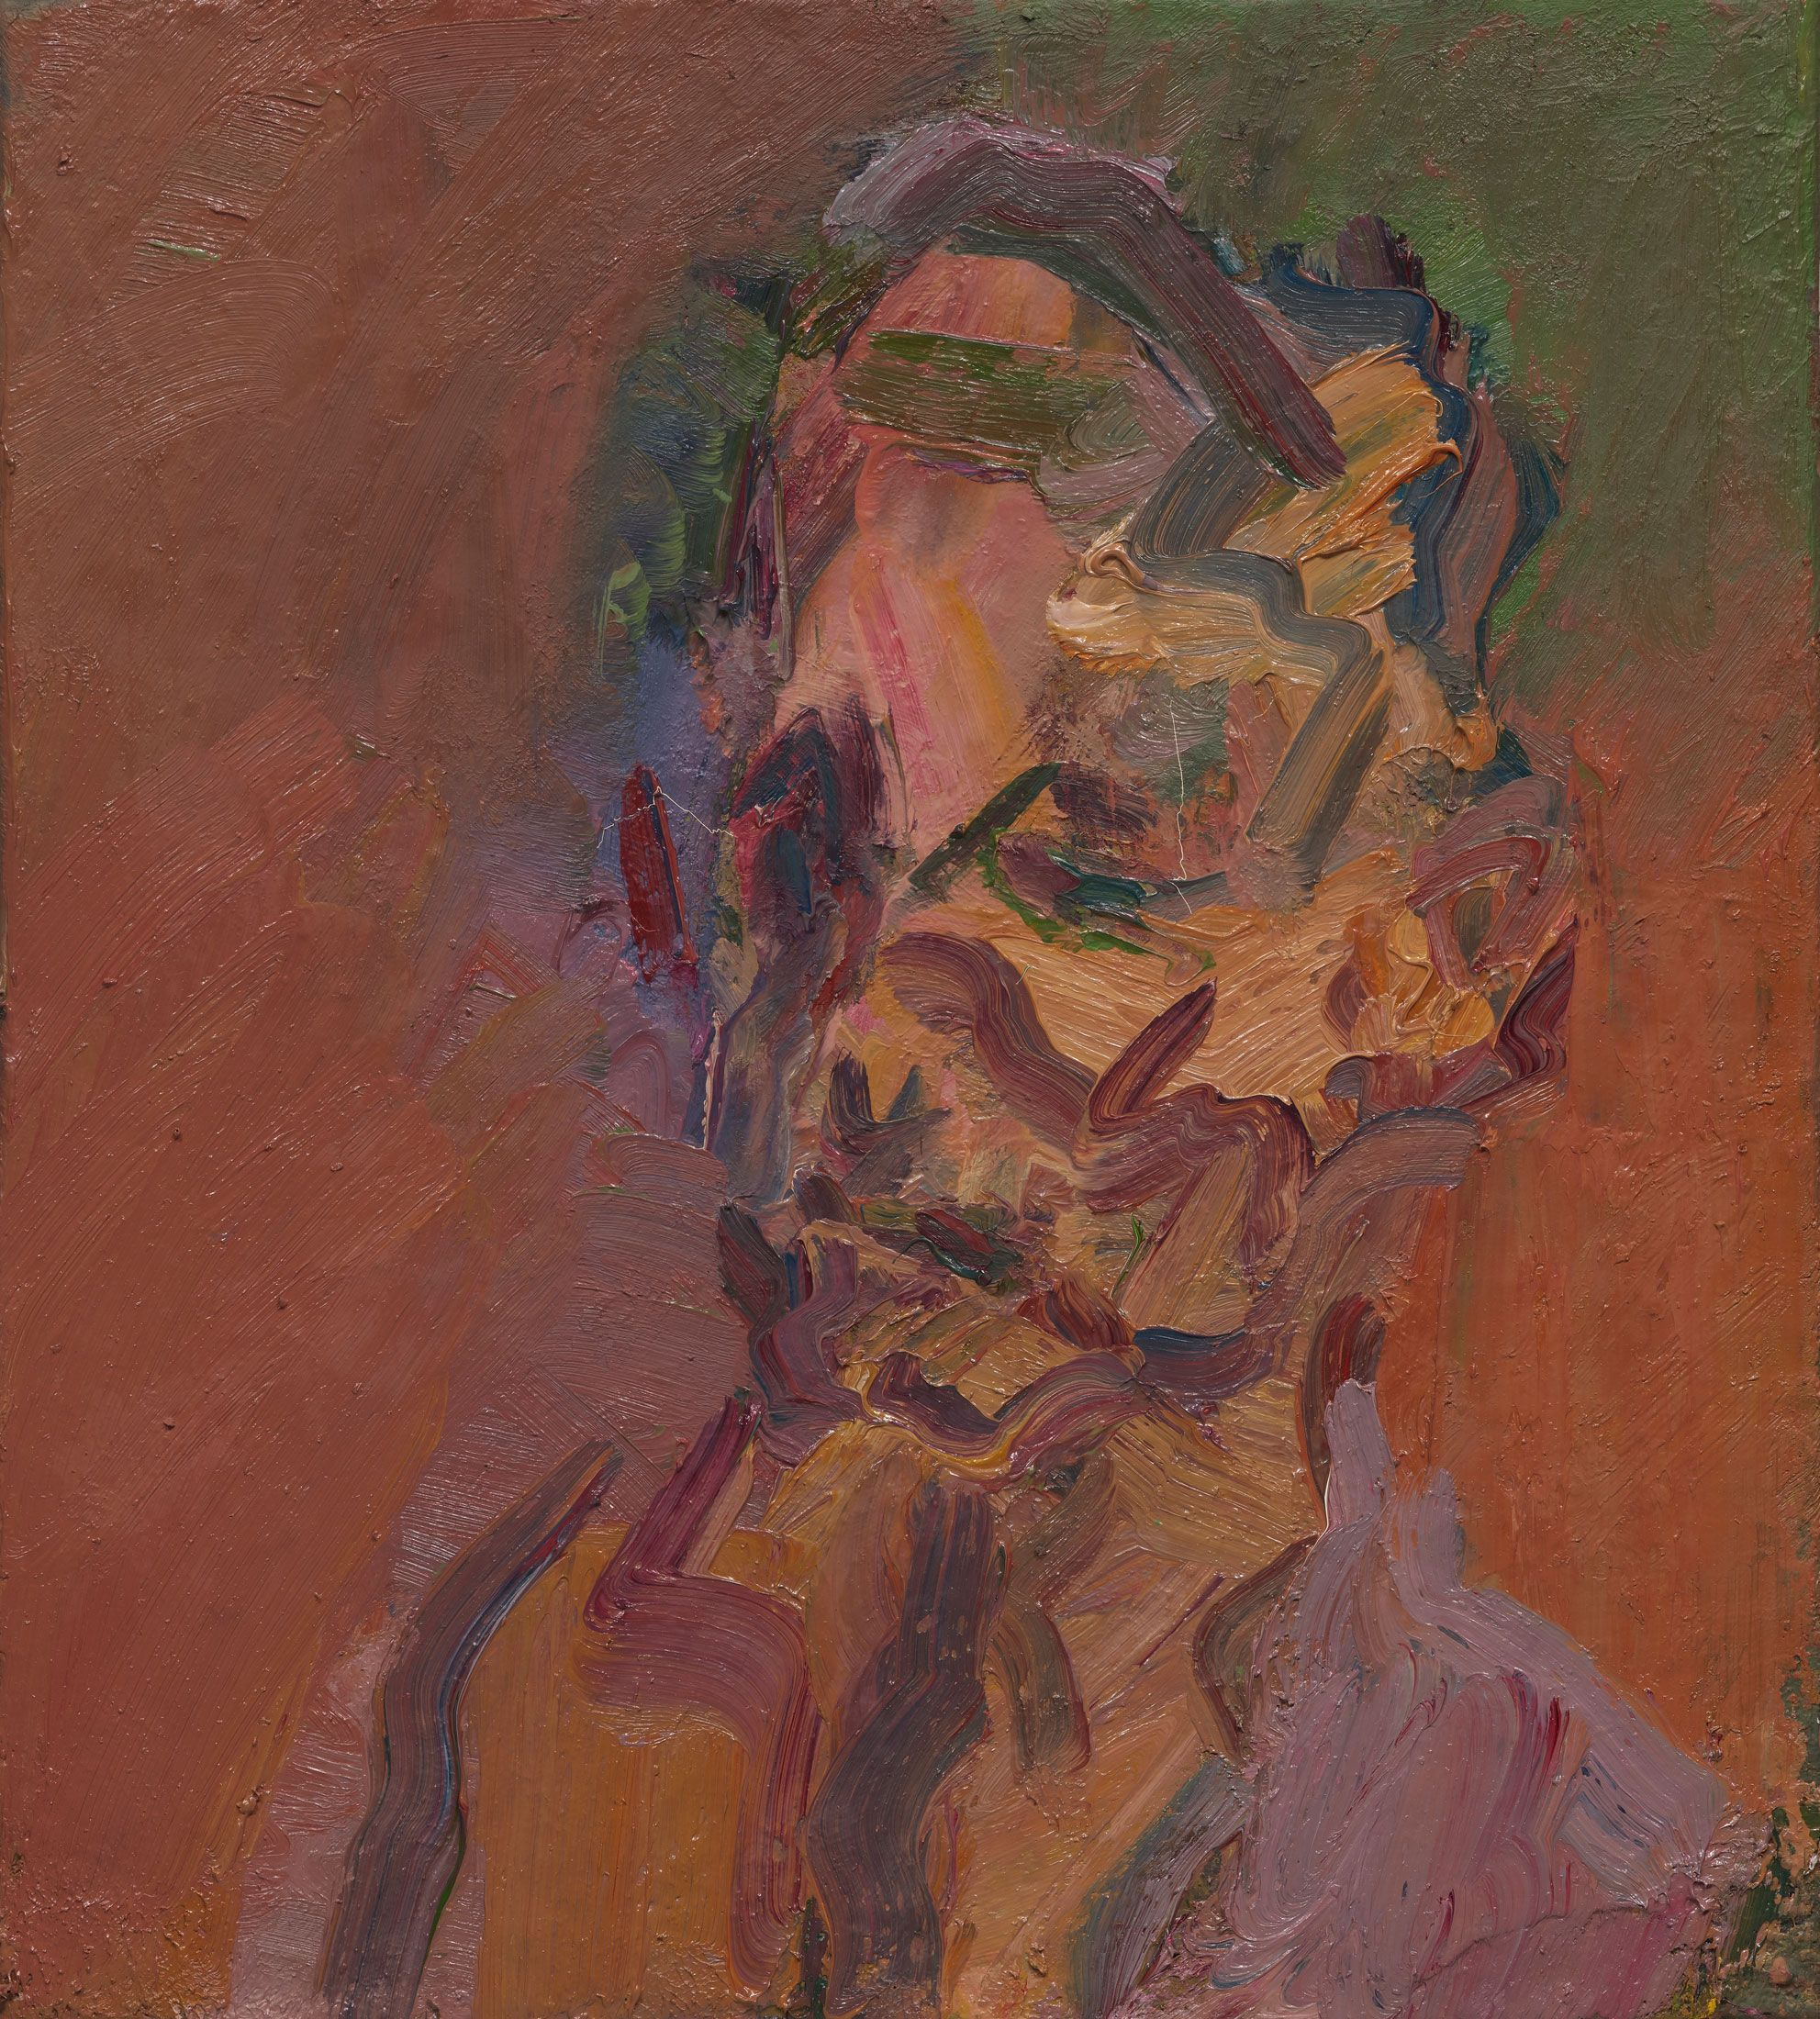 Frank Auerbach, Head of David Landau, 2016. Oil on canvas, 18 1⁄4 x 20 1⁄8 inches.